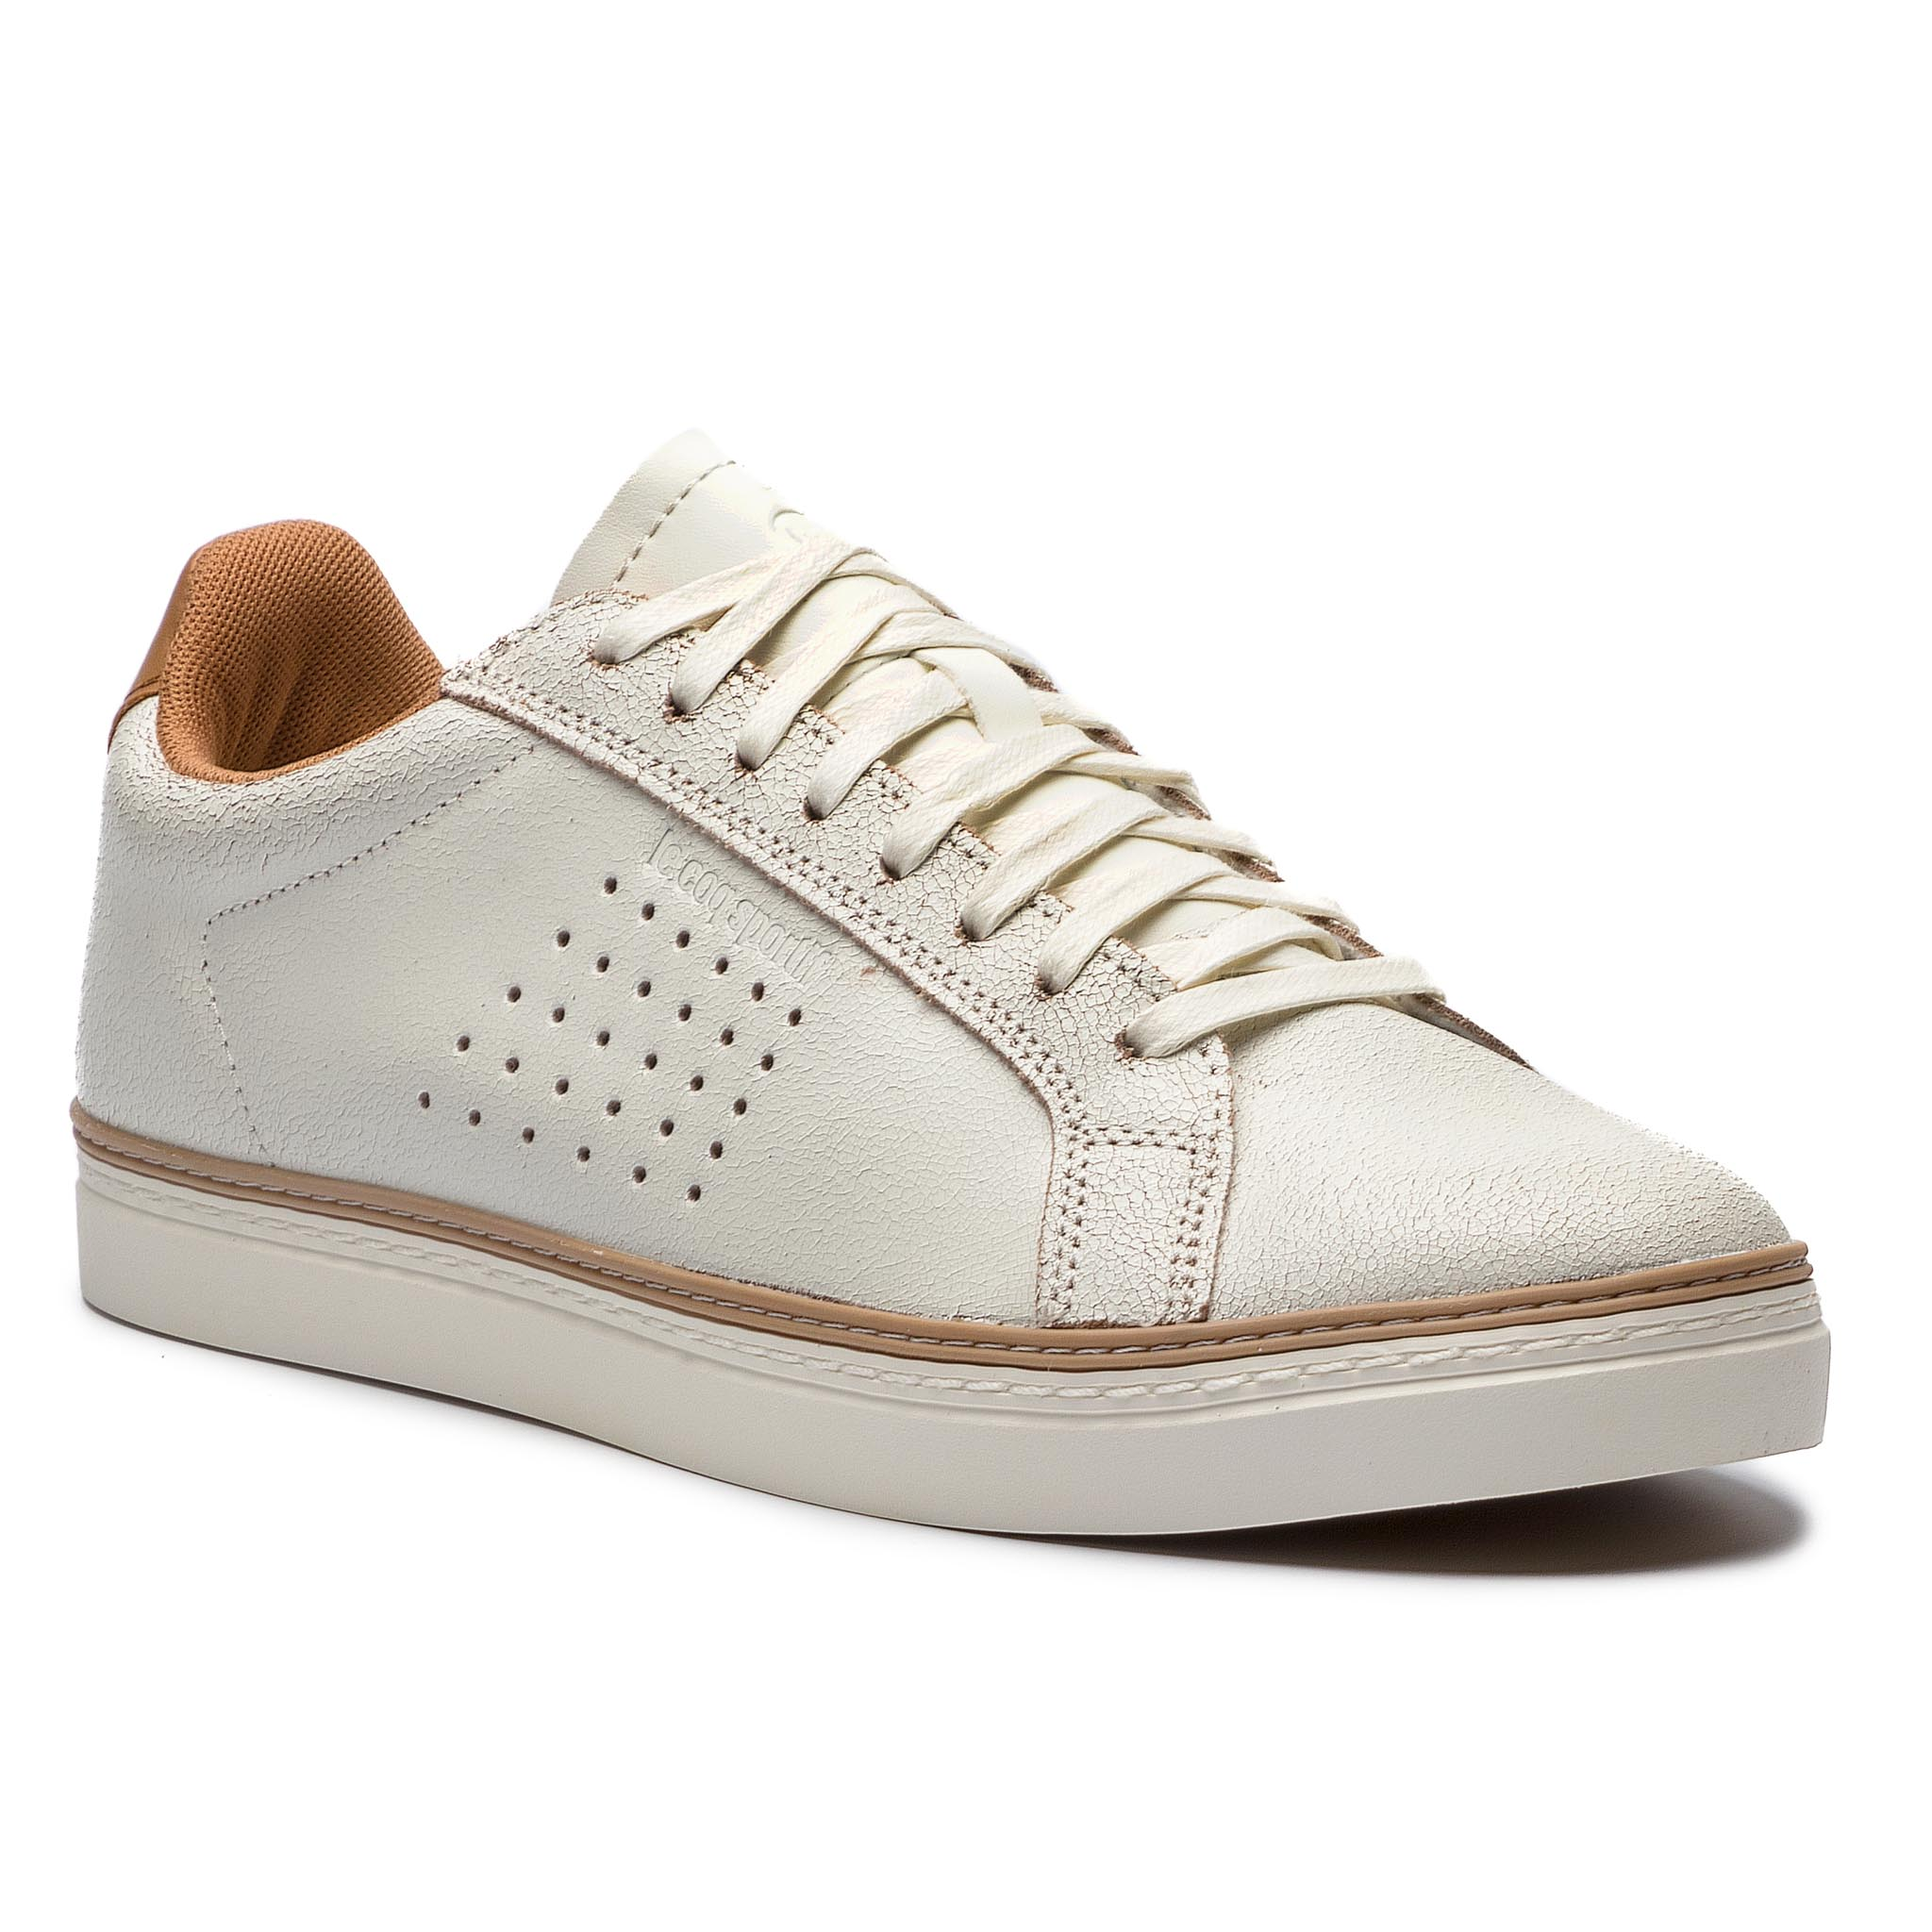 Sneakers LE COQ SPORTIF - Courtace Premium 1820349 Marshmallow/Brown Sugar